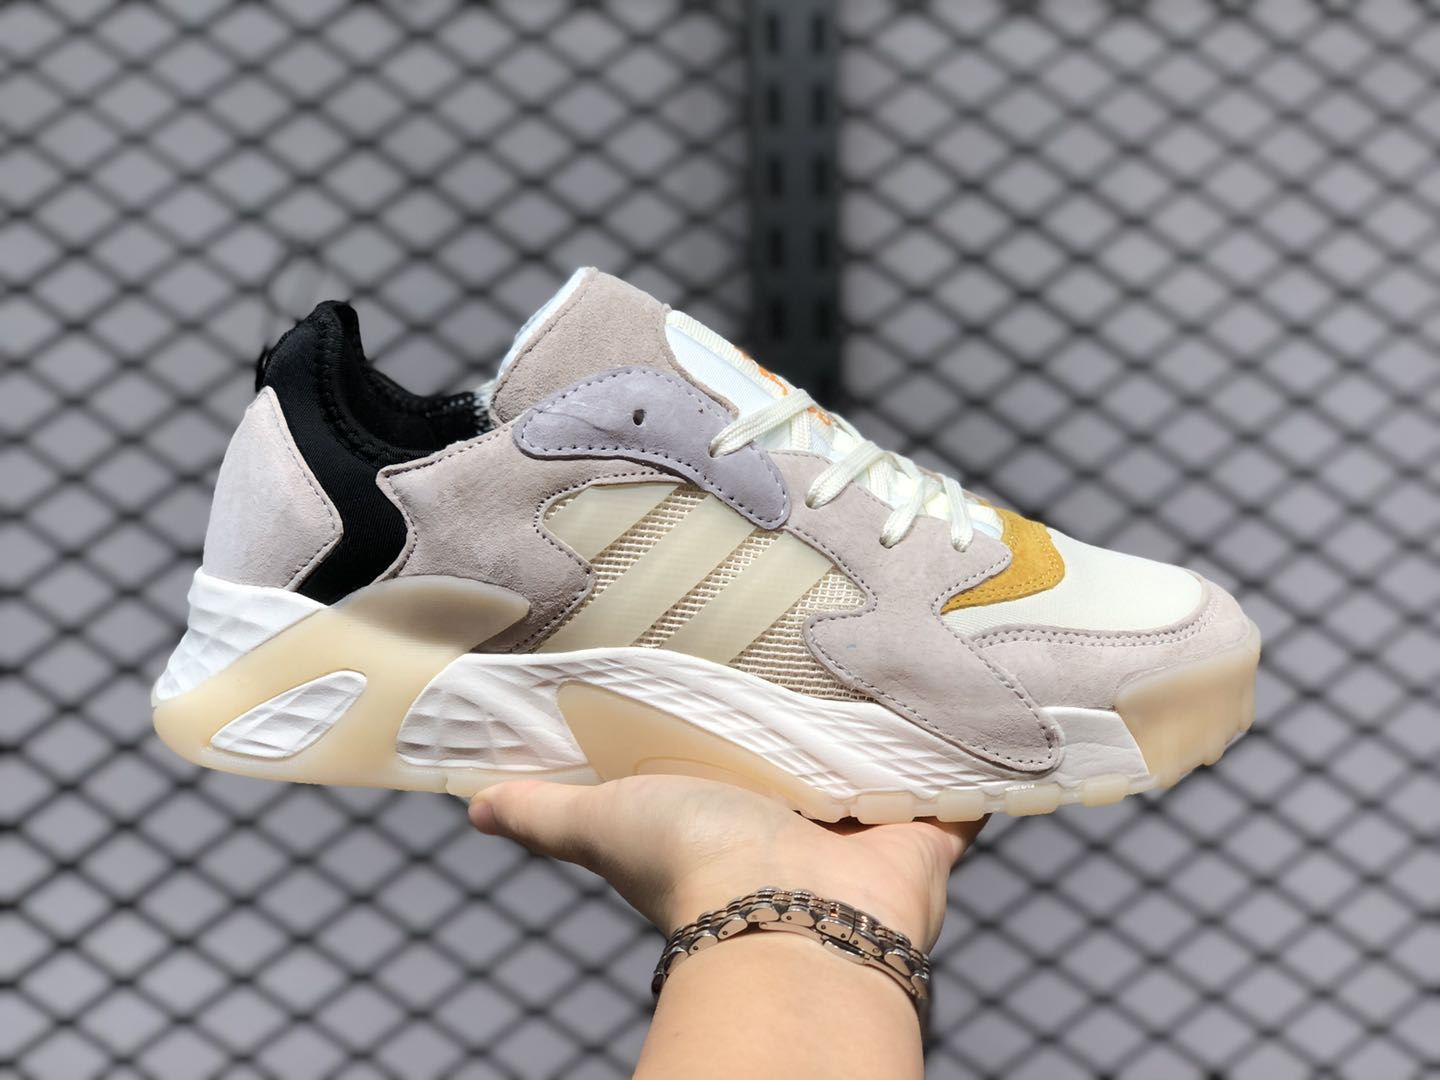 Adidas Streetball Off White/Sand-Core Black Sneakers For Sale FW1215